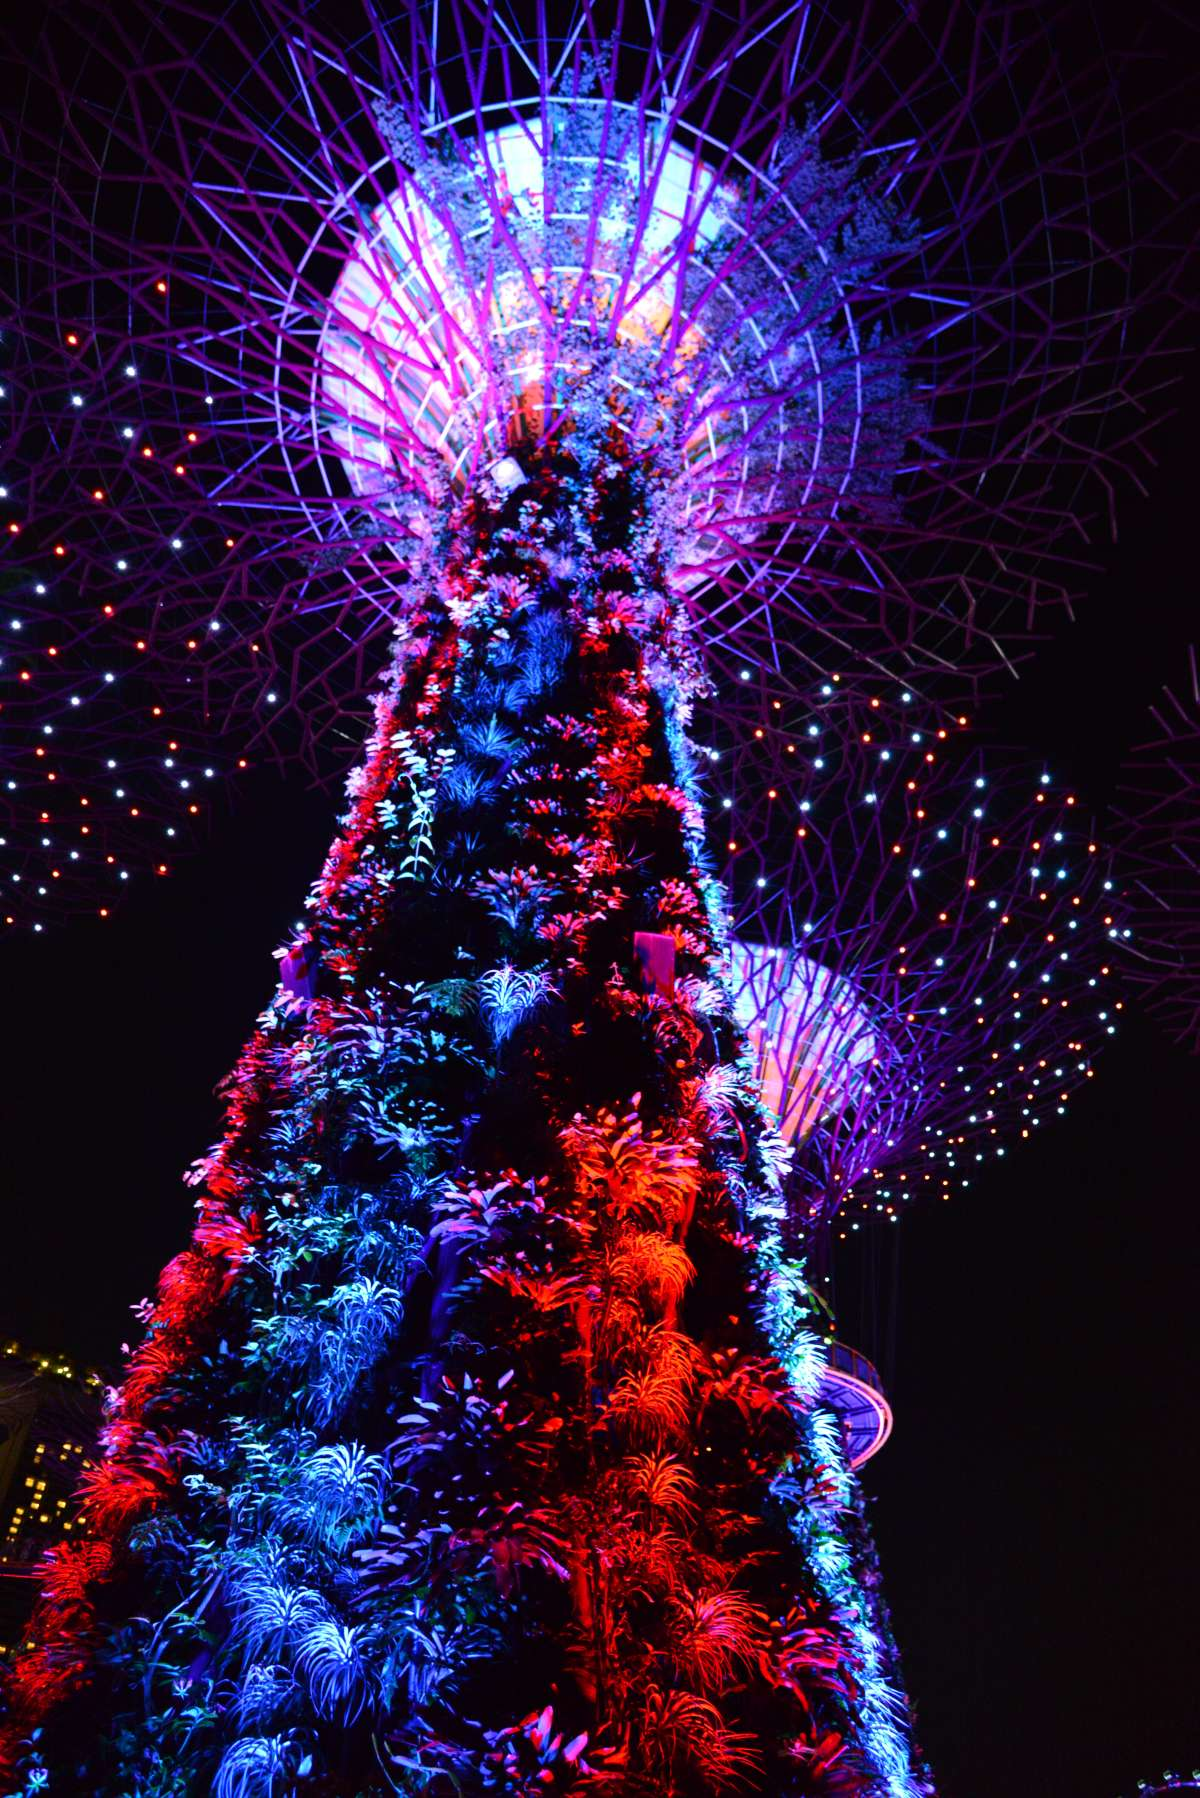 singapore_garden_by_the_bay_0011